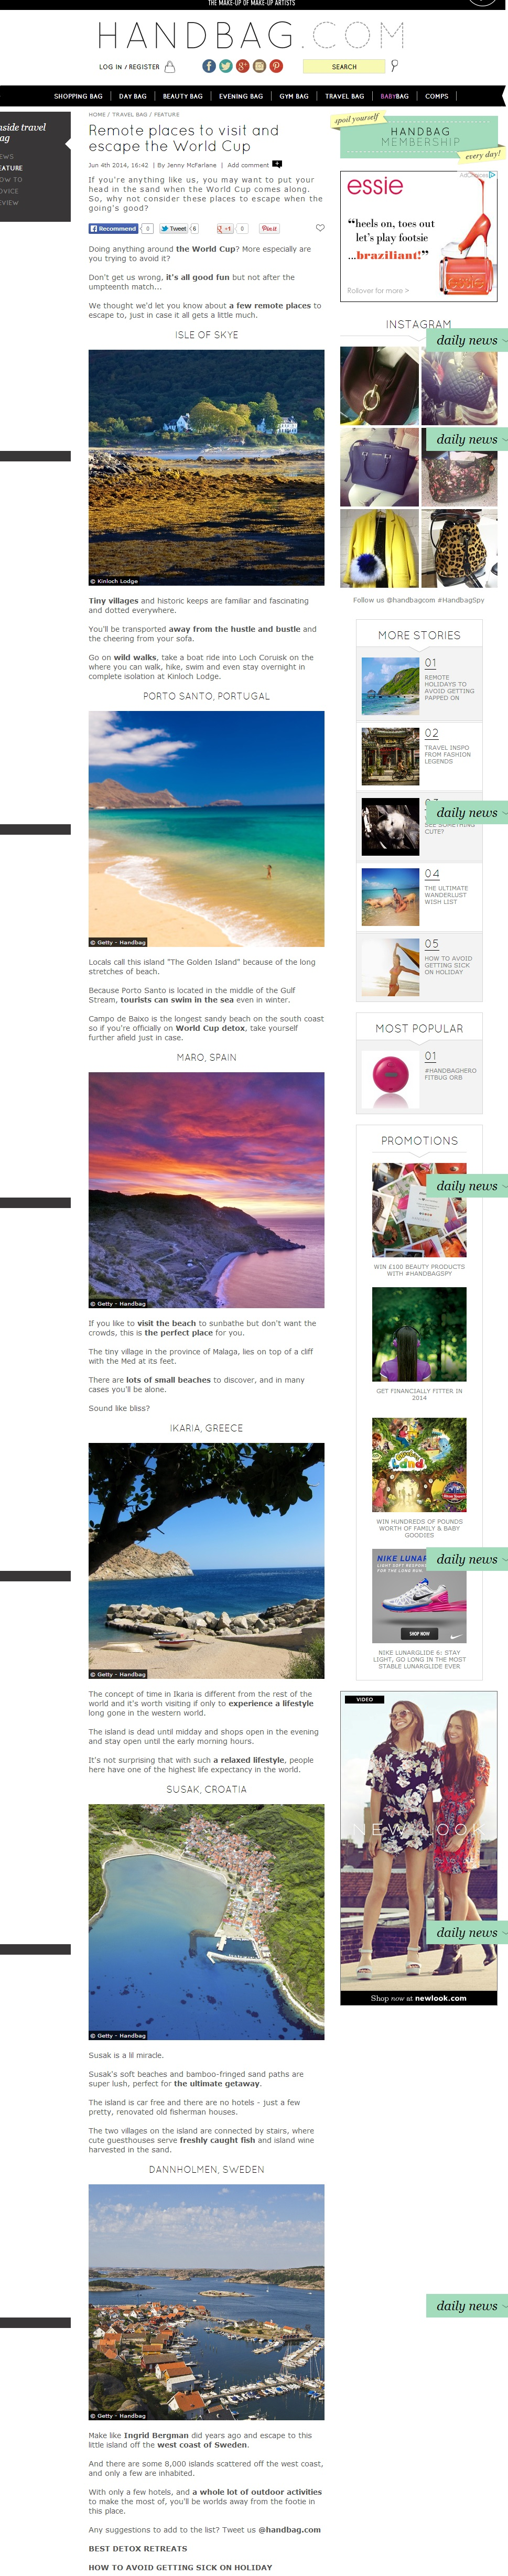 screencapture-www-handbag-com-travel-bag-feature-a575272-remote-places-to-visit-and-escape-the-world-cup-html